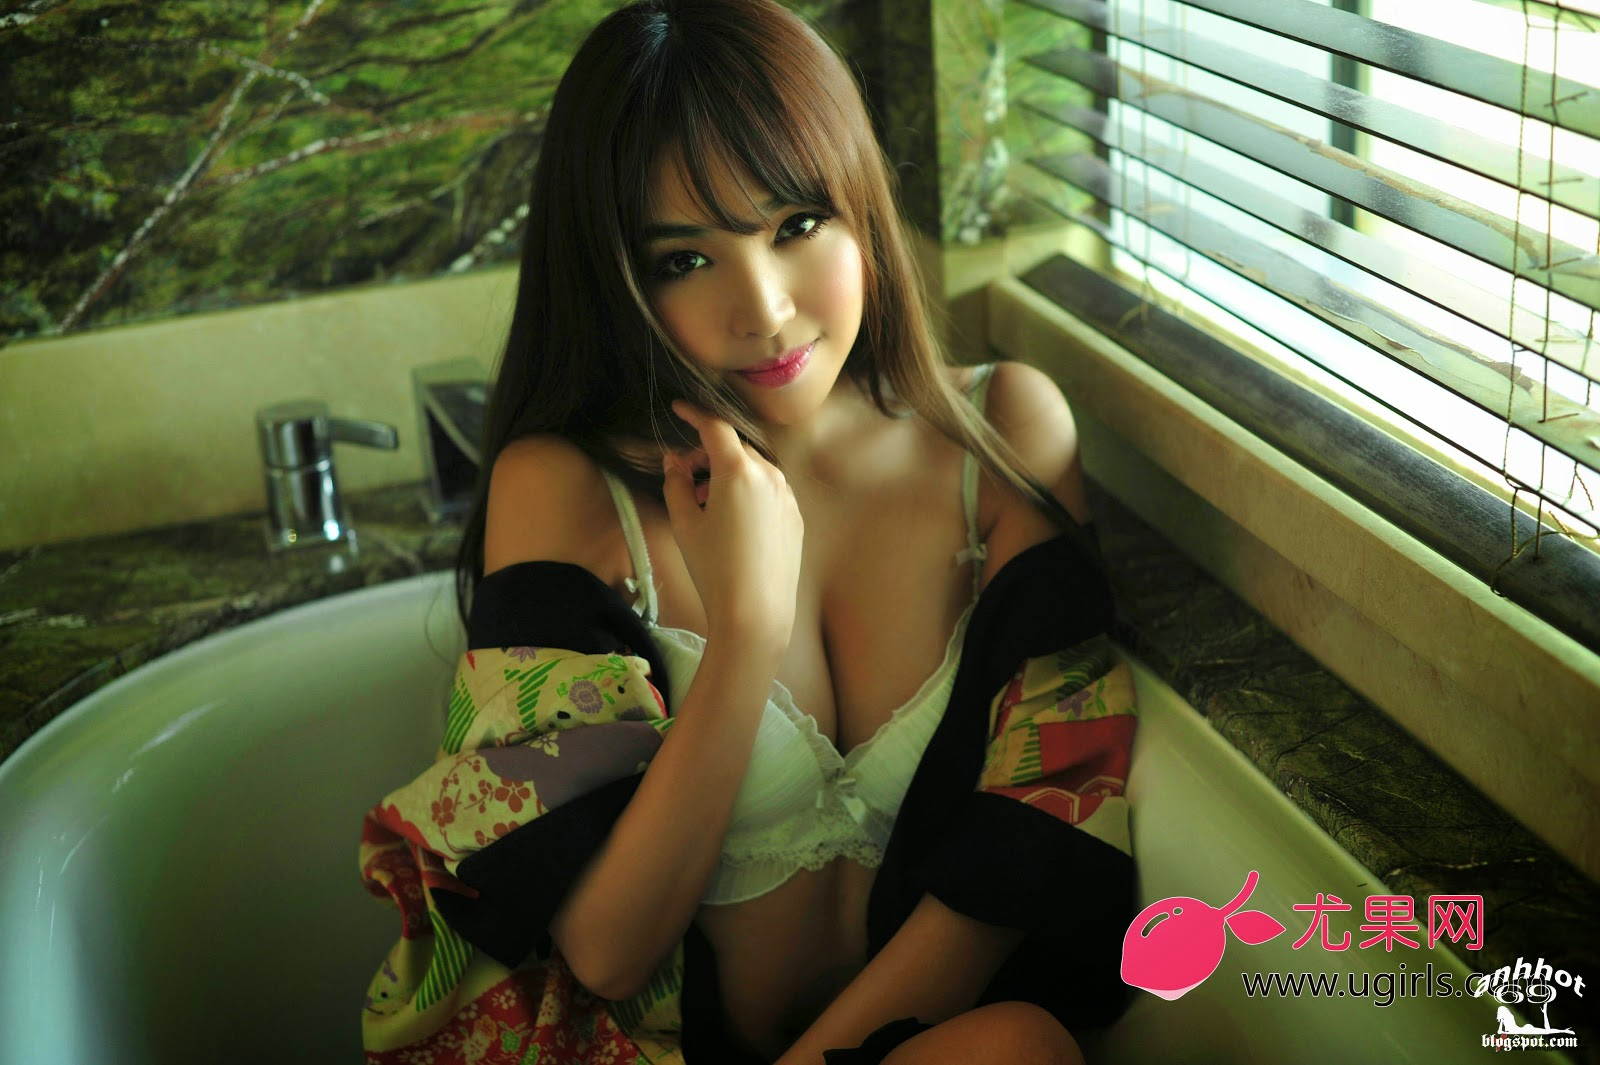 UGirls-2014.04.21-NO.013_DLS_4531